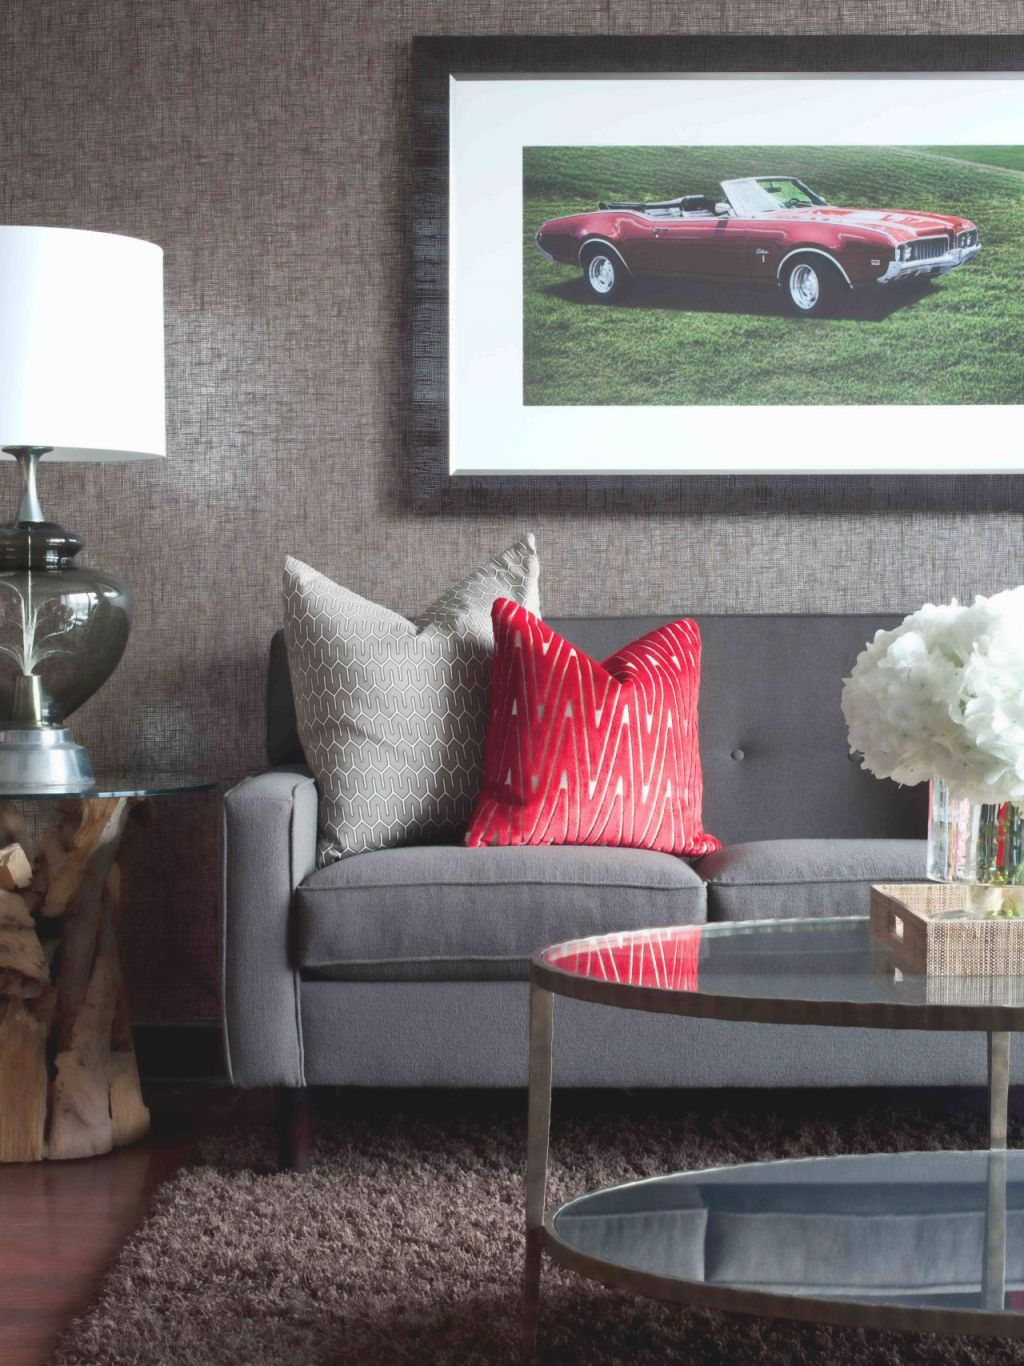 Bachelor Pad Ideas On A Budget | Hgtv regarding Decor Pad Living Room